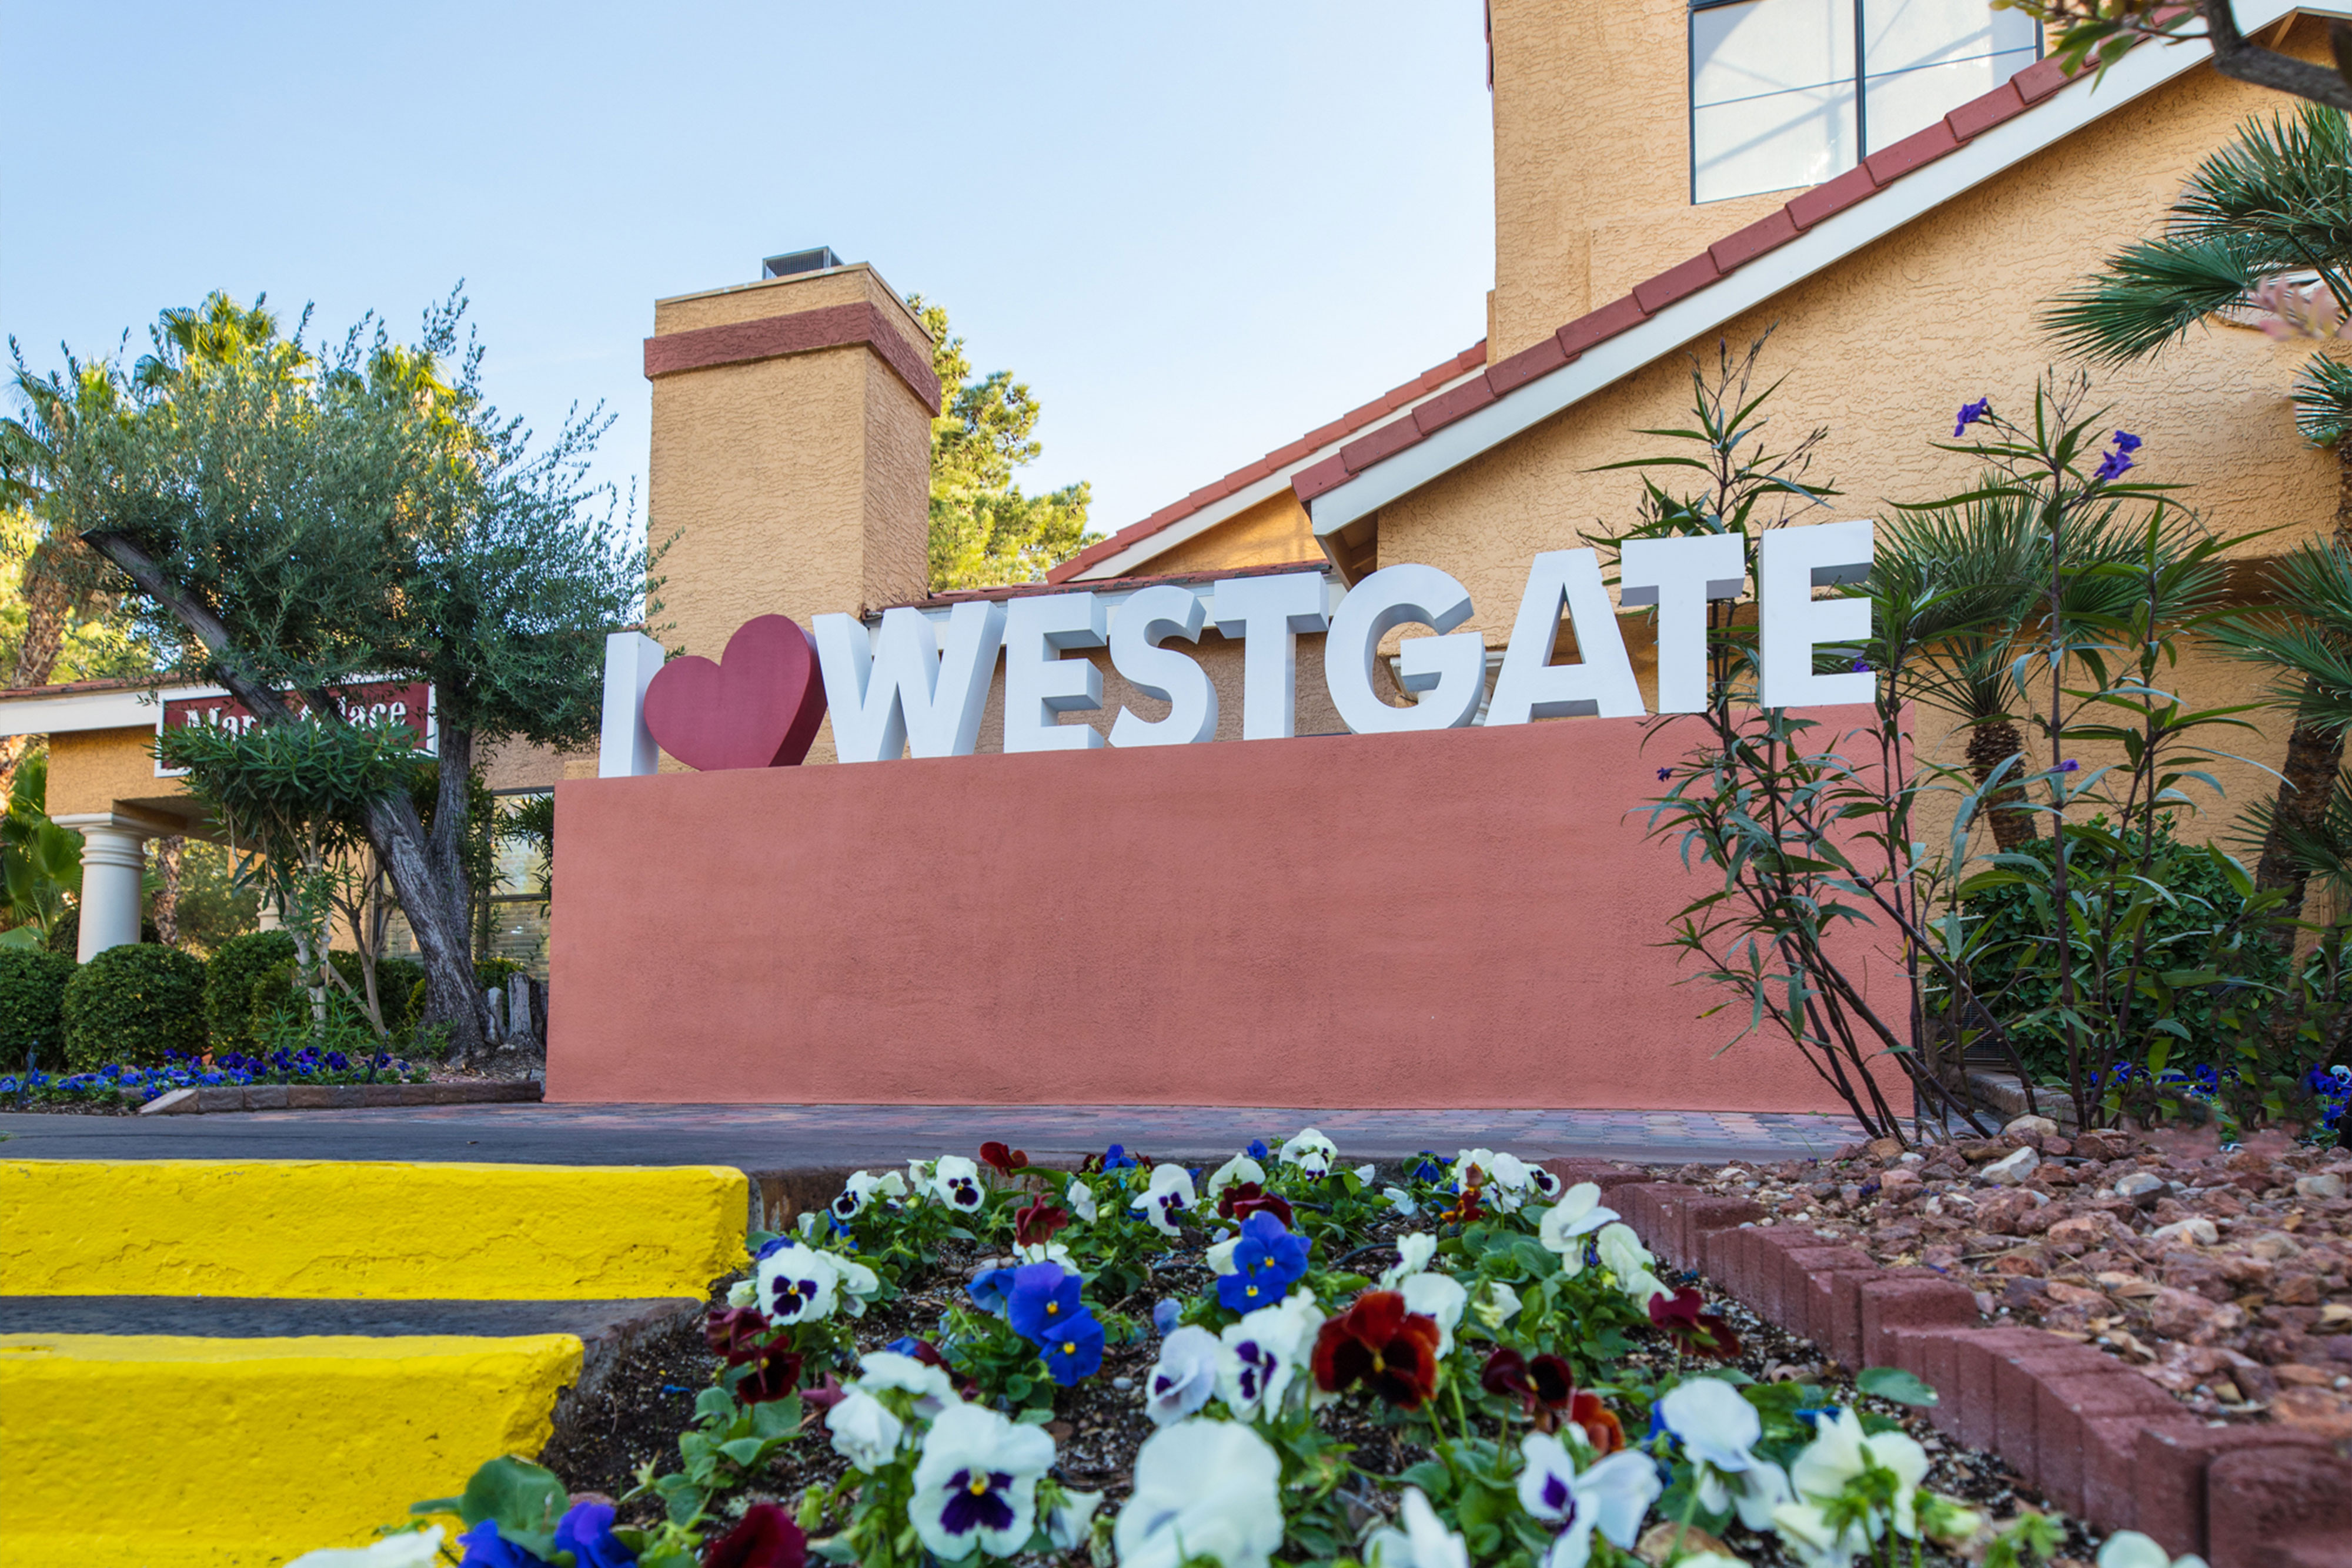 Looking for savings on your Las Vegas Vacation? Senior Citizens (50 years of age and older) can receive up to 10% off the Best Available Rate with Westgate Resorts.